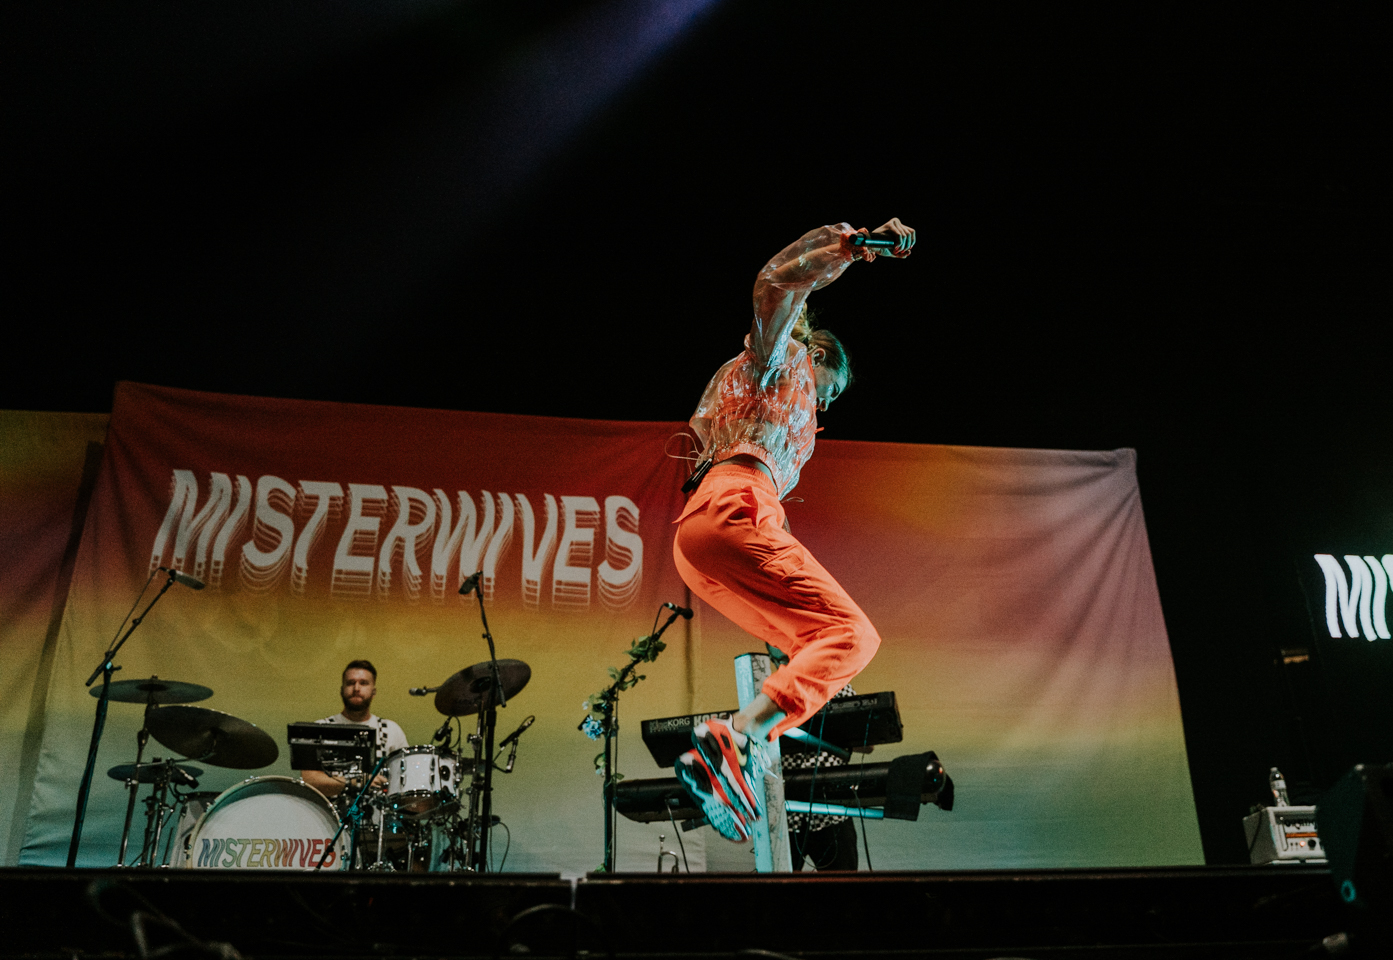 Misterwives Iowa Events Center